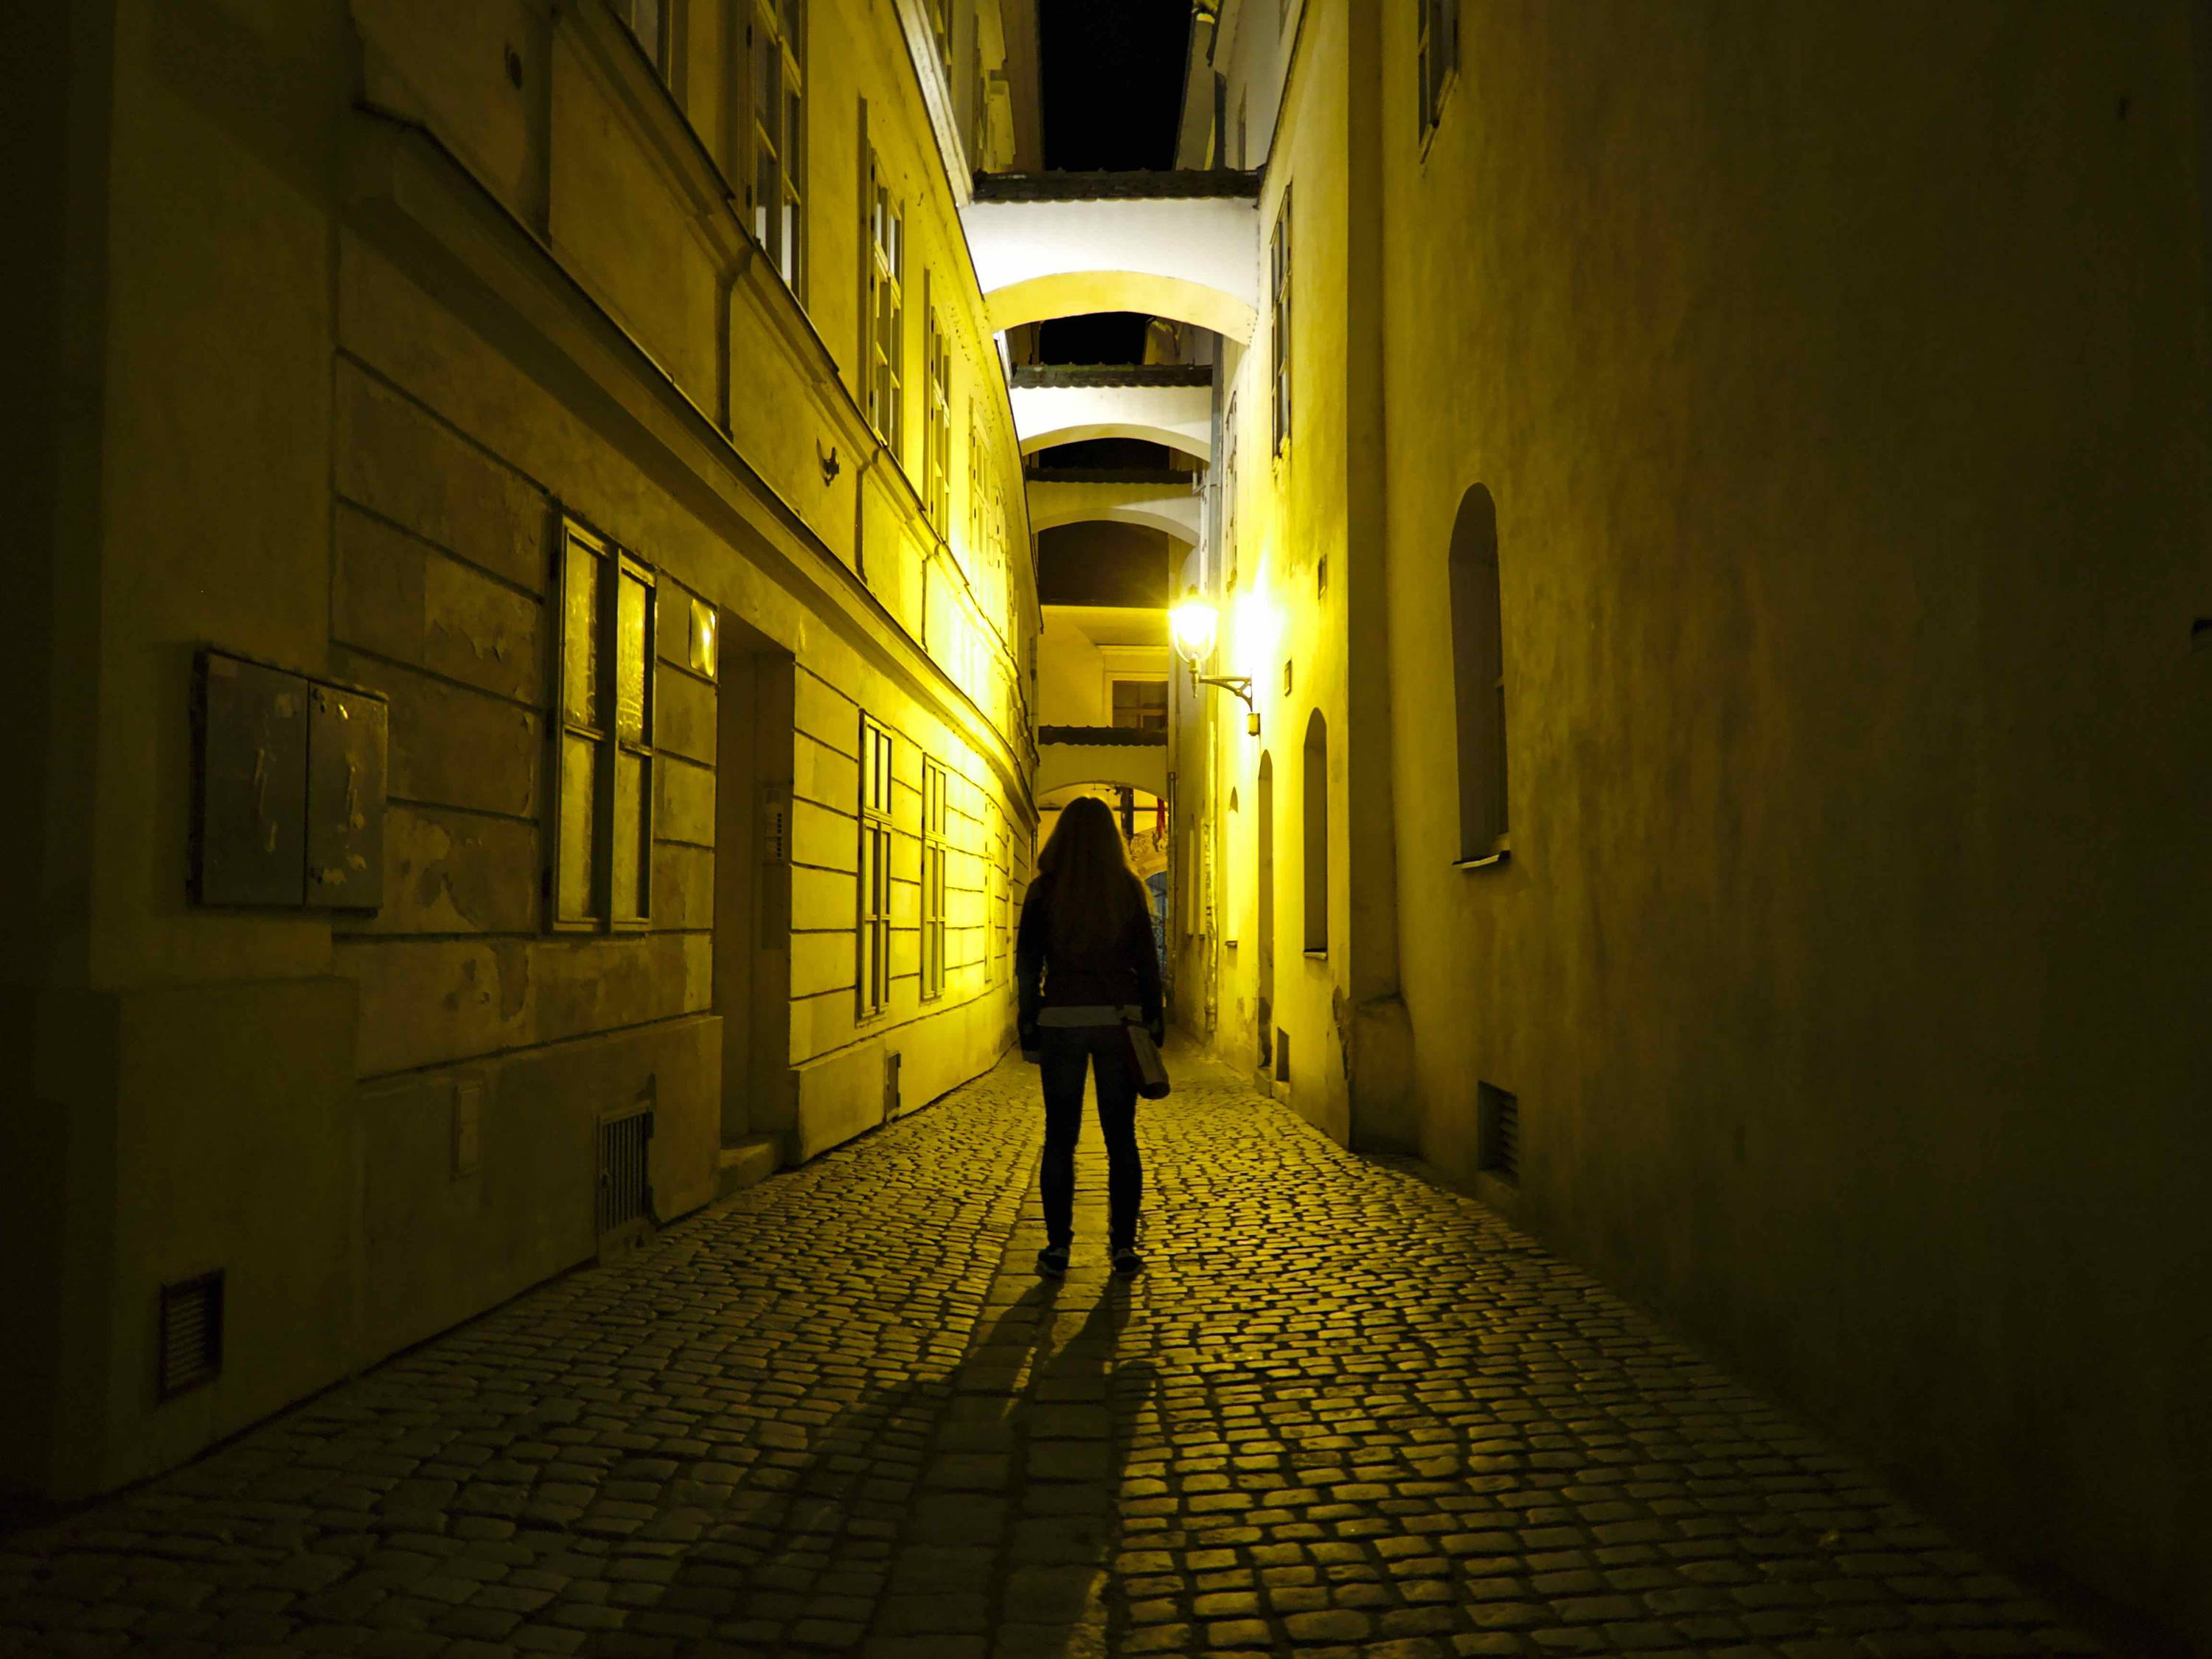 Woman in alleyway at night